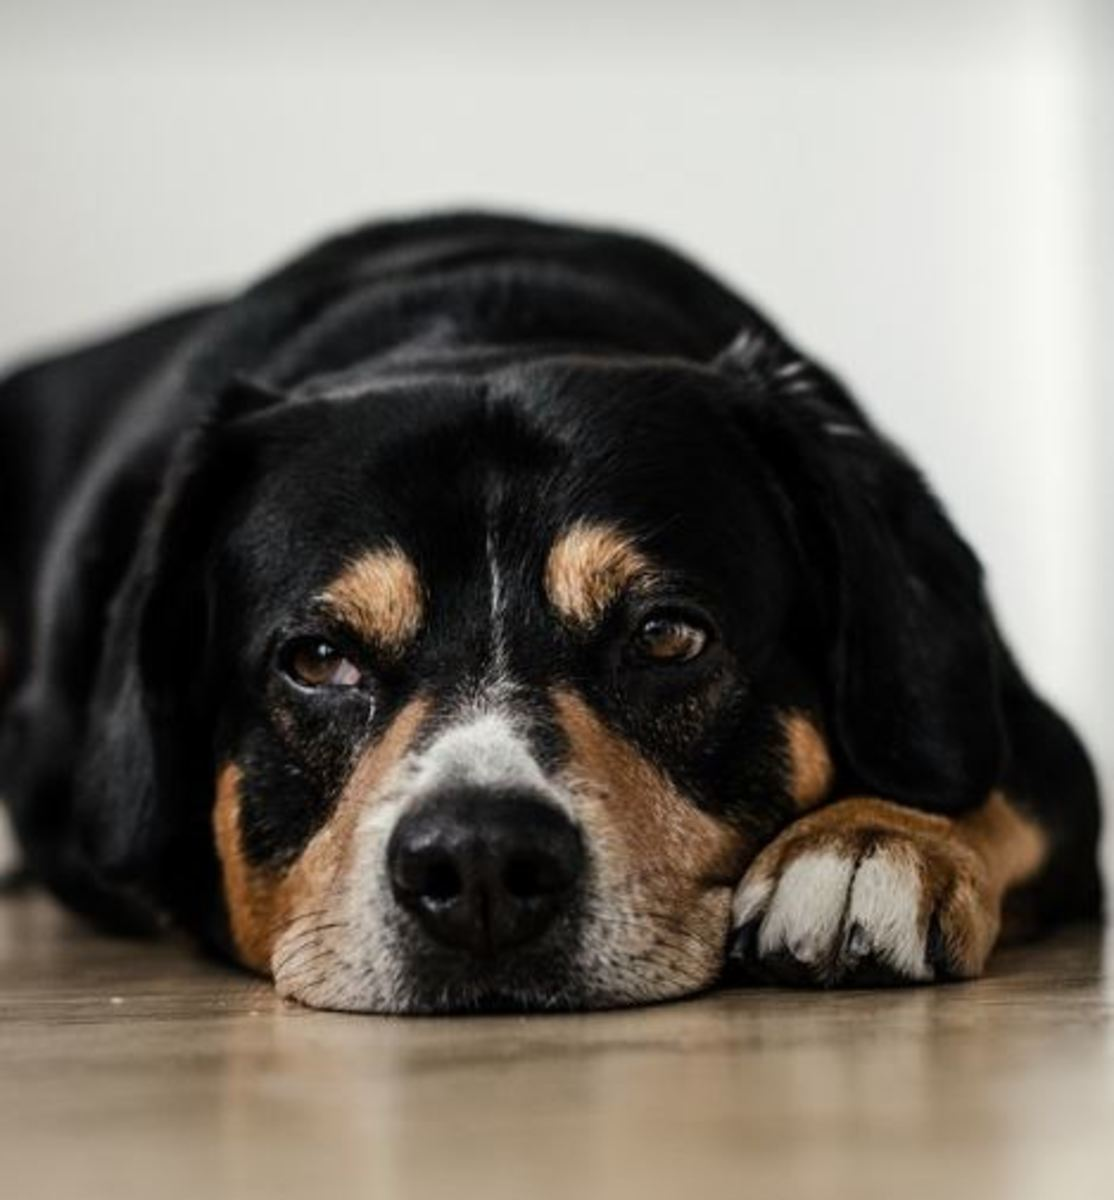 can-dogs-cry-tears-like-humans